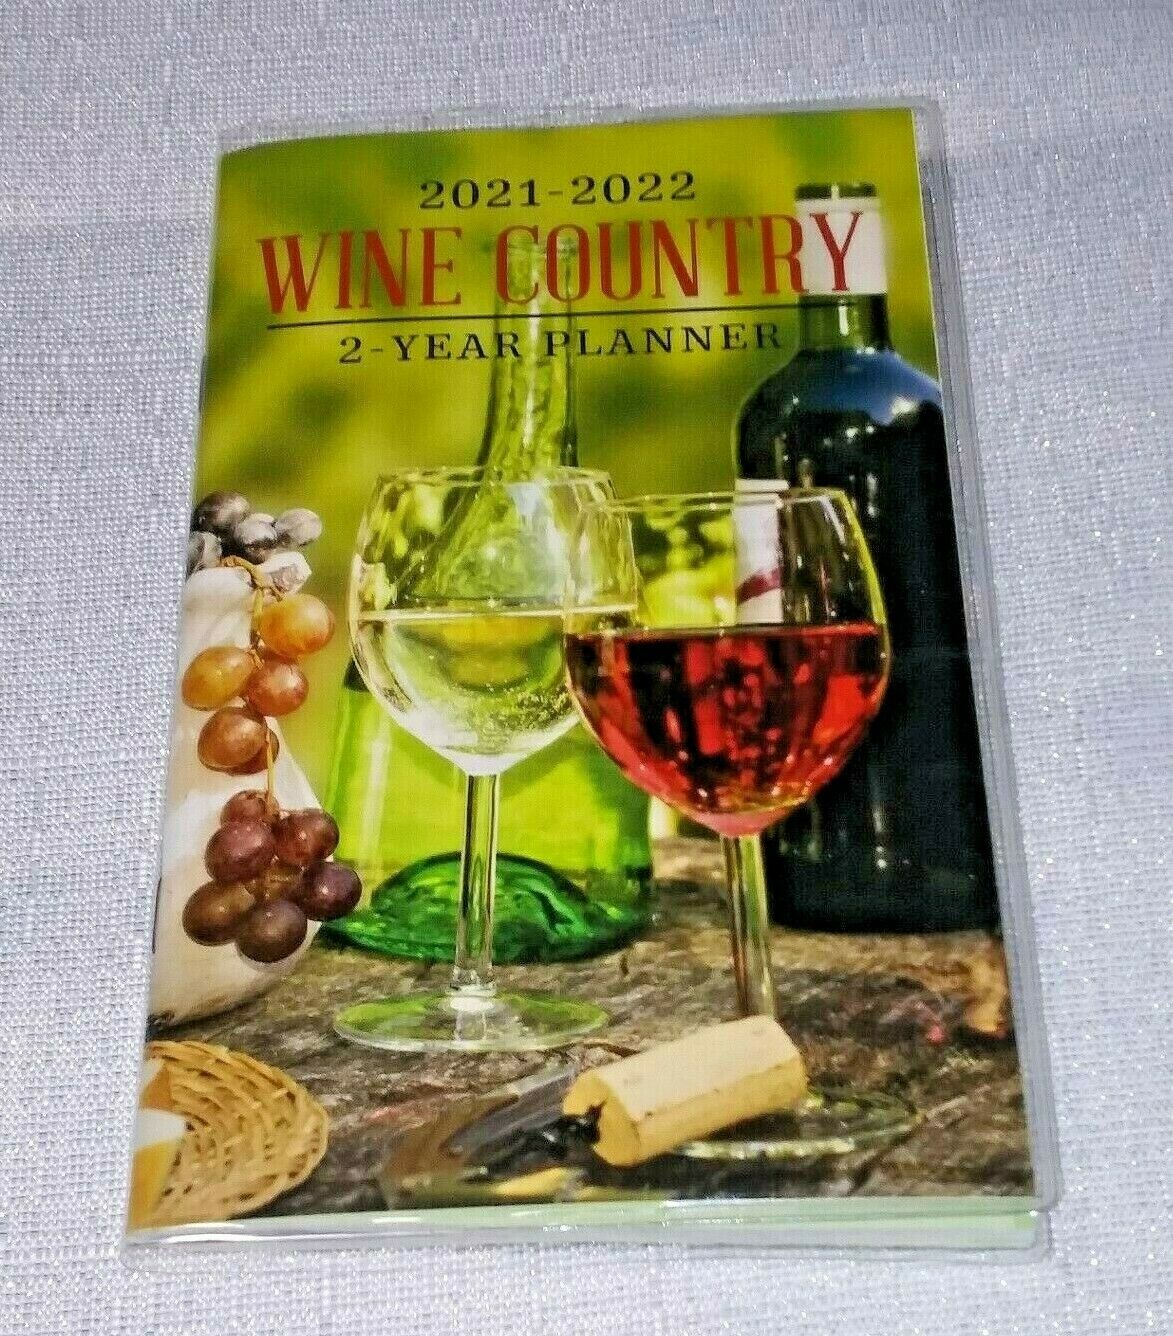 Greenbrier 2021 - 2022 Wine Country 2 - Year Planner Monthly View Calendar - STEPSHEY